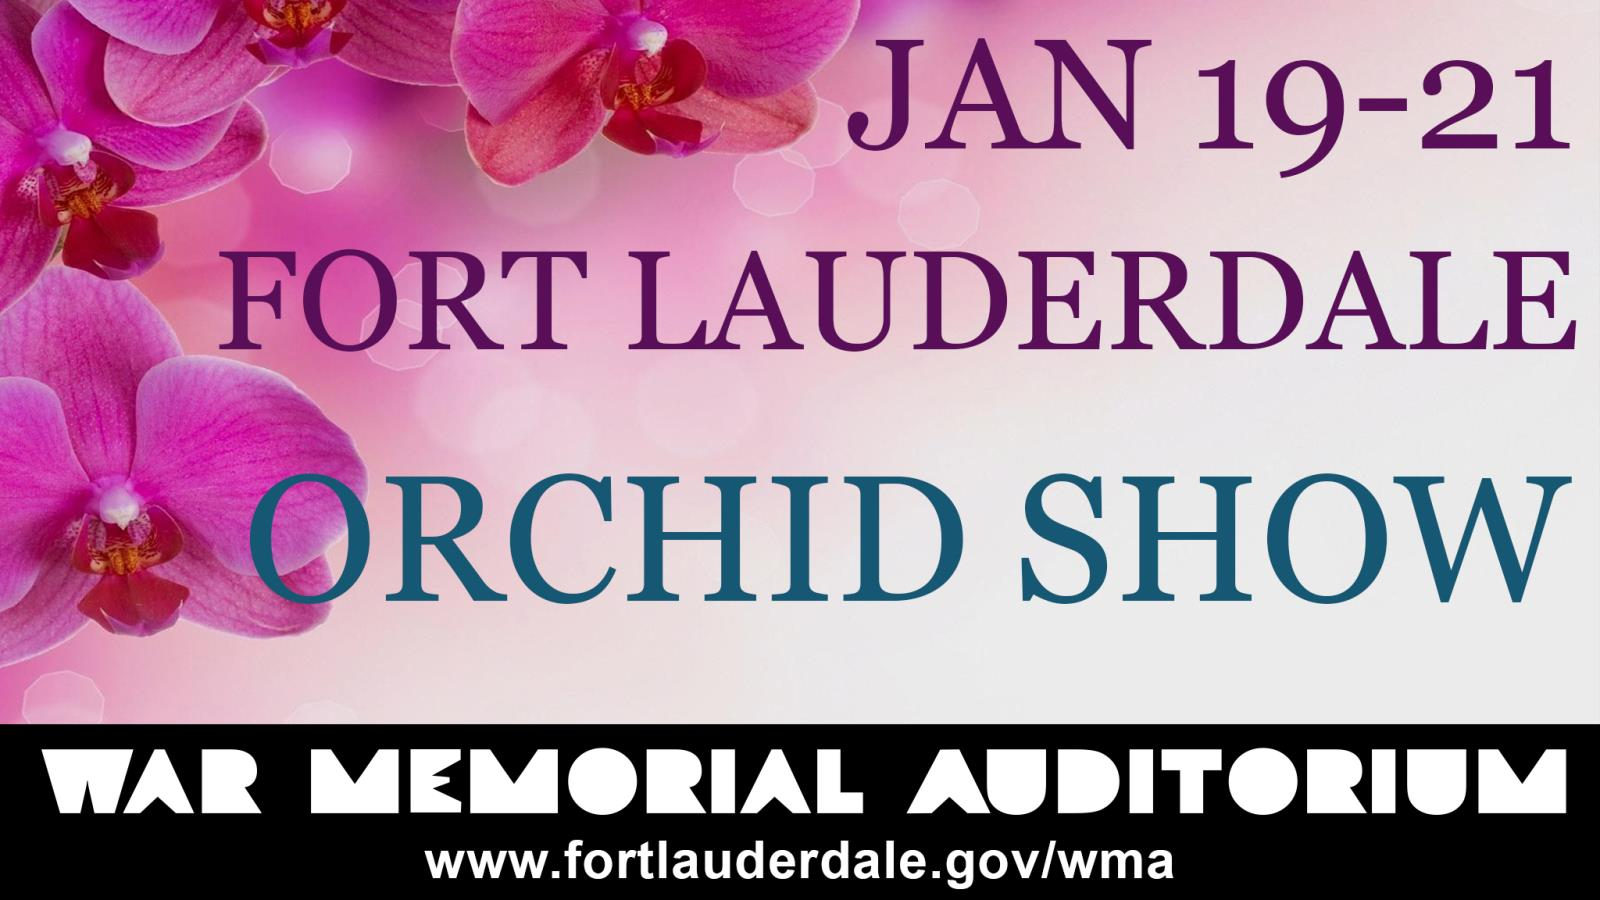 OrchidShowJan1921_Nodate_Monitor